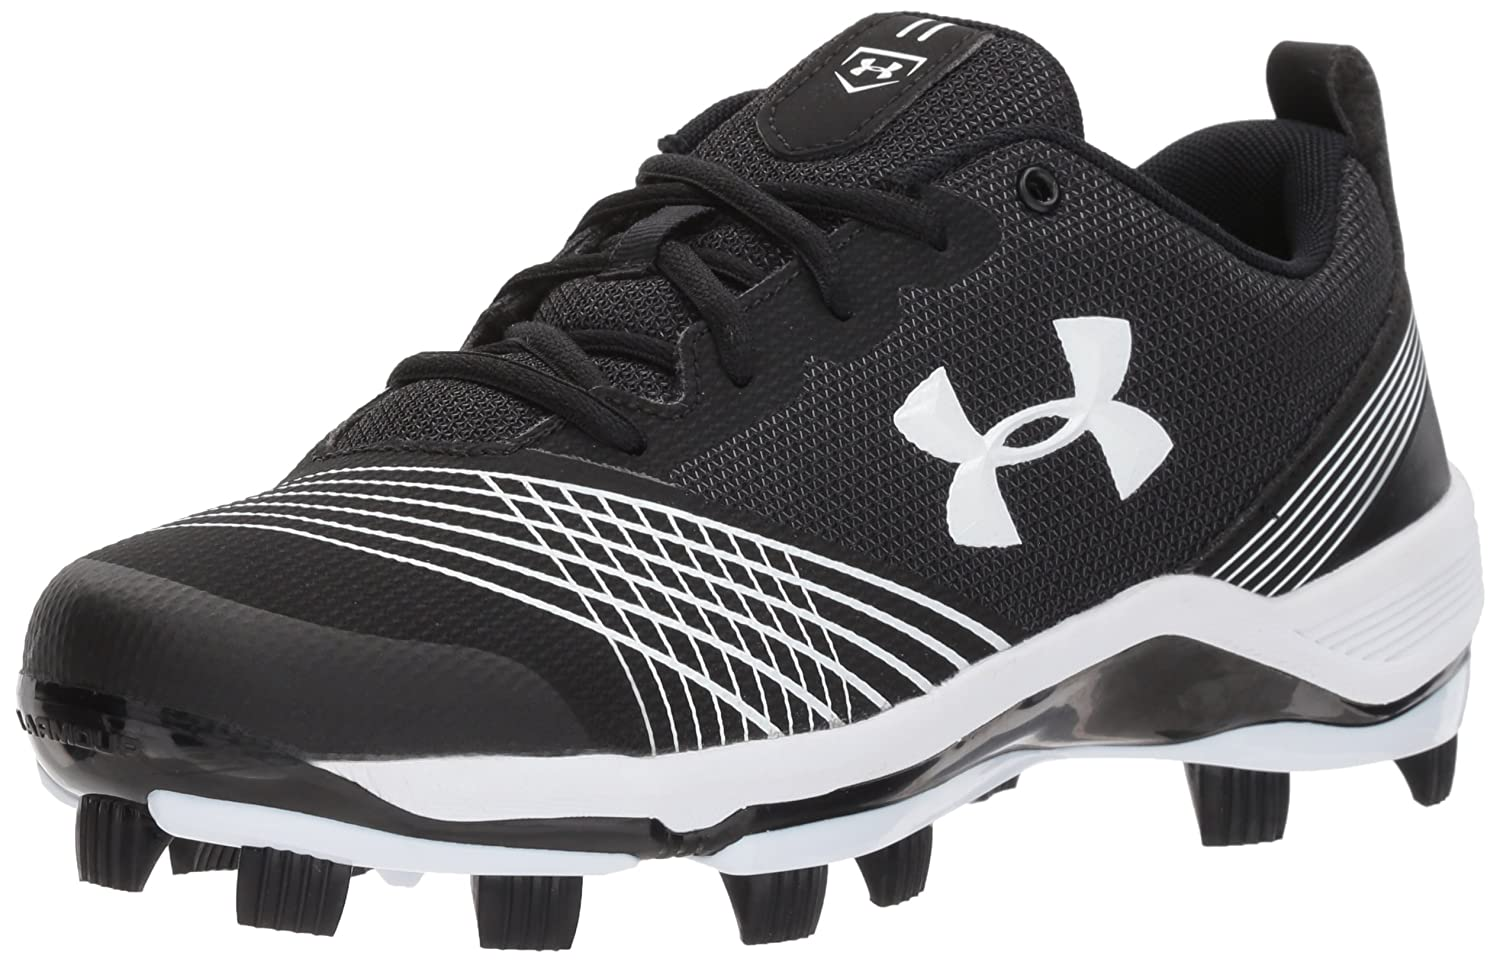 Under Armour Women's Glyde TPU Softball Shoe, Black/Black B06XCL958B 6 M US|Black (011)/White